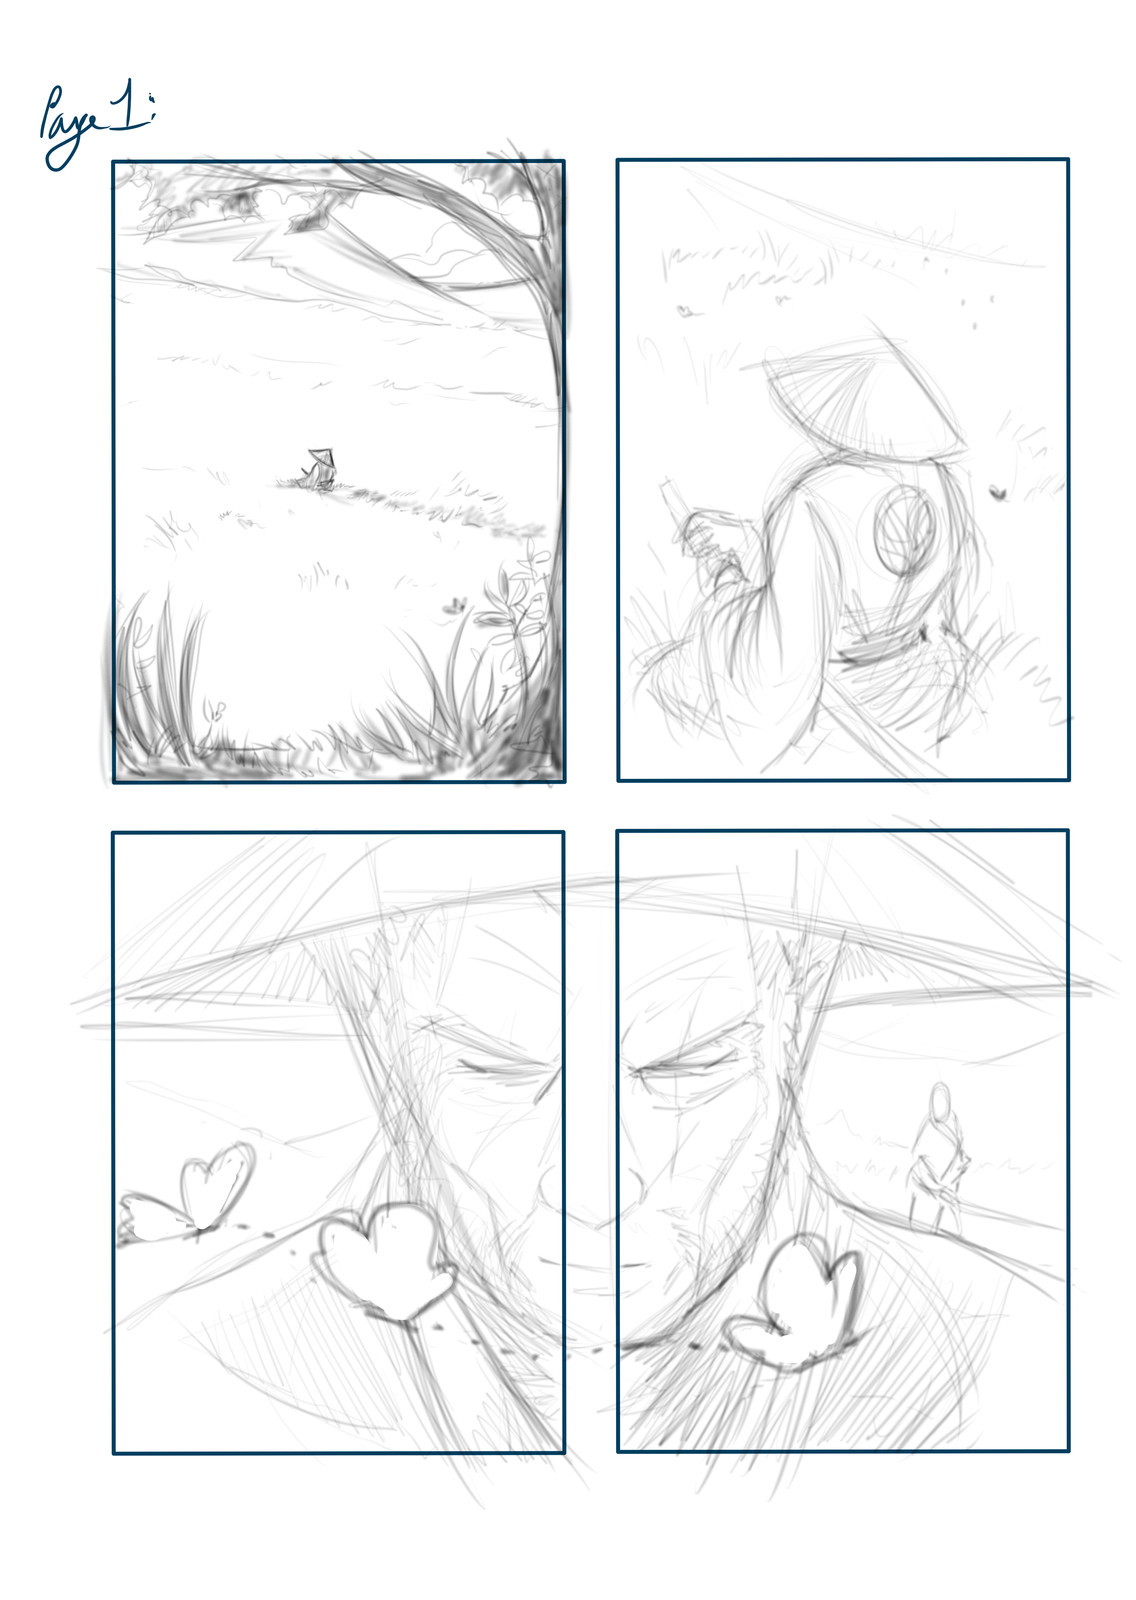 Pencil layout for Page 01, using Mischief